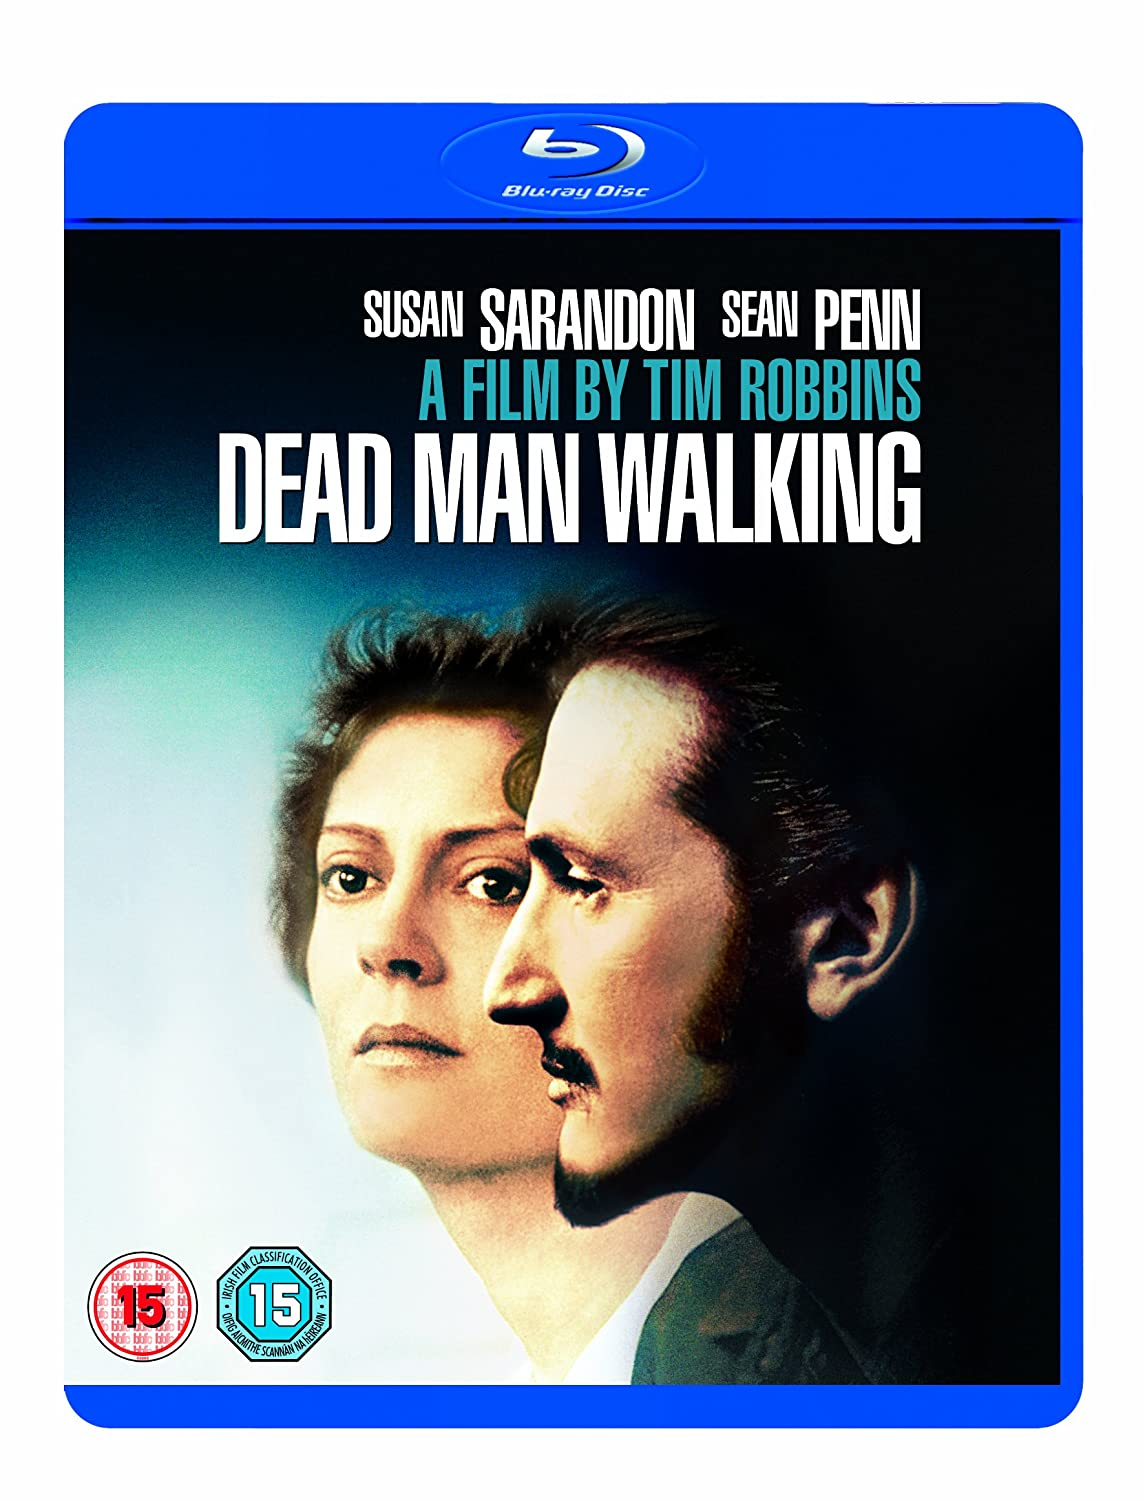 essay on dead man walking A dead man walking matthew poncelet is sentenced to death for the murder of walter delacroix and hope percy he has been closely followed by sister helen.